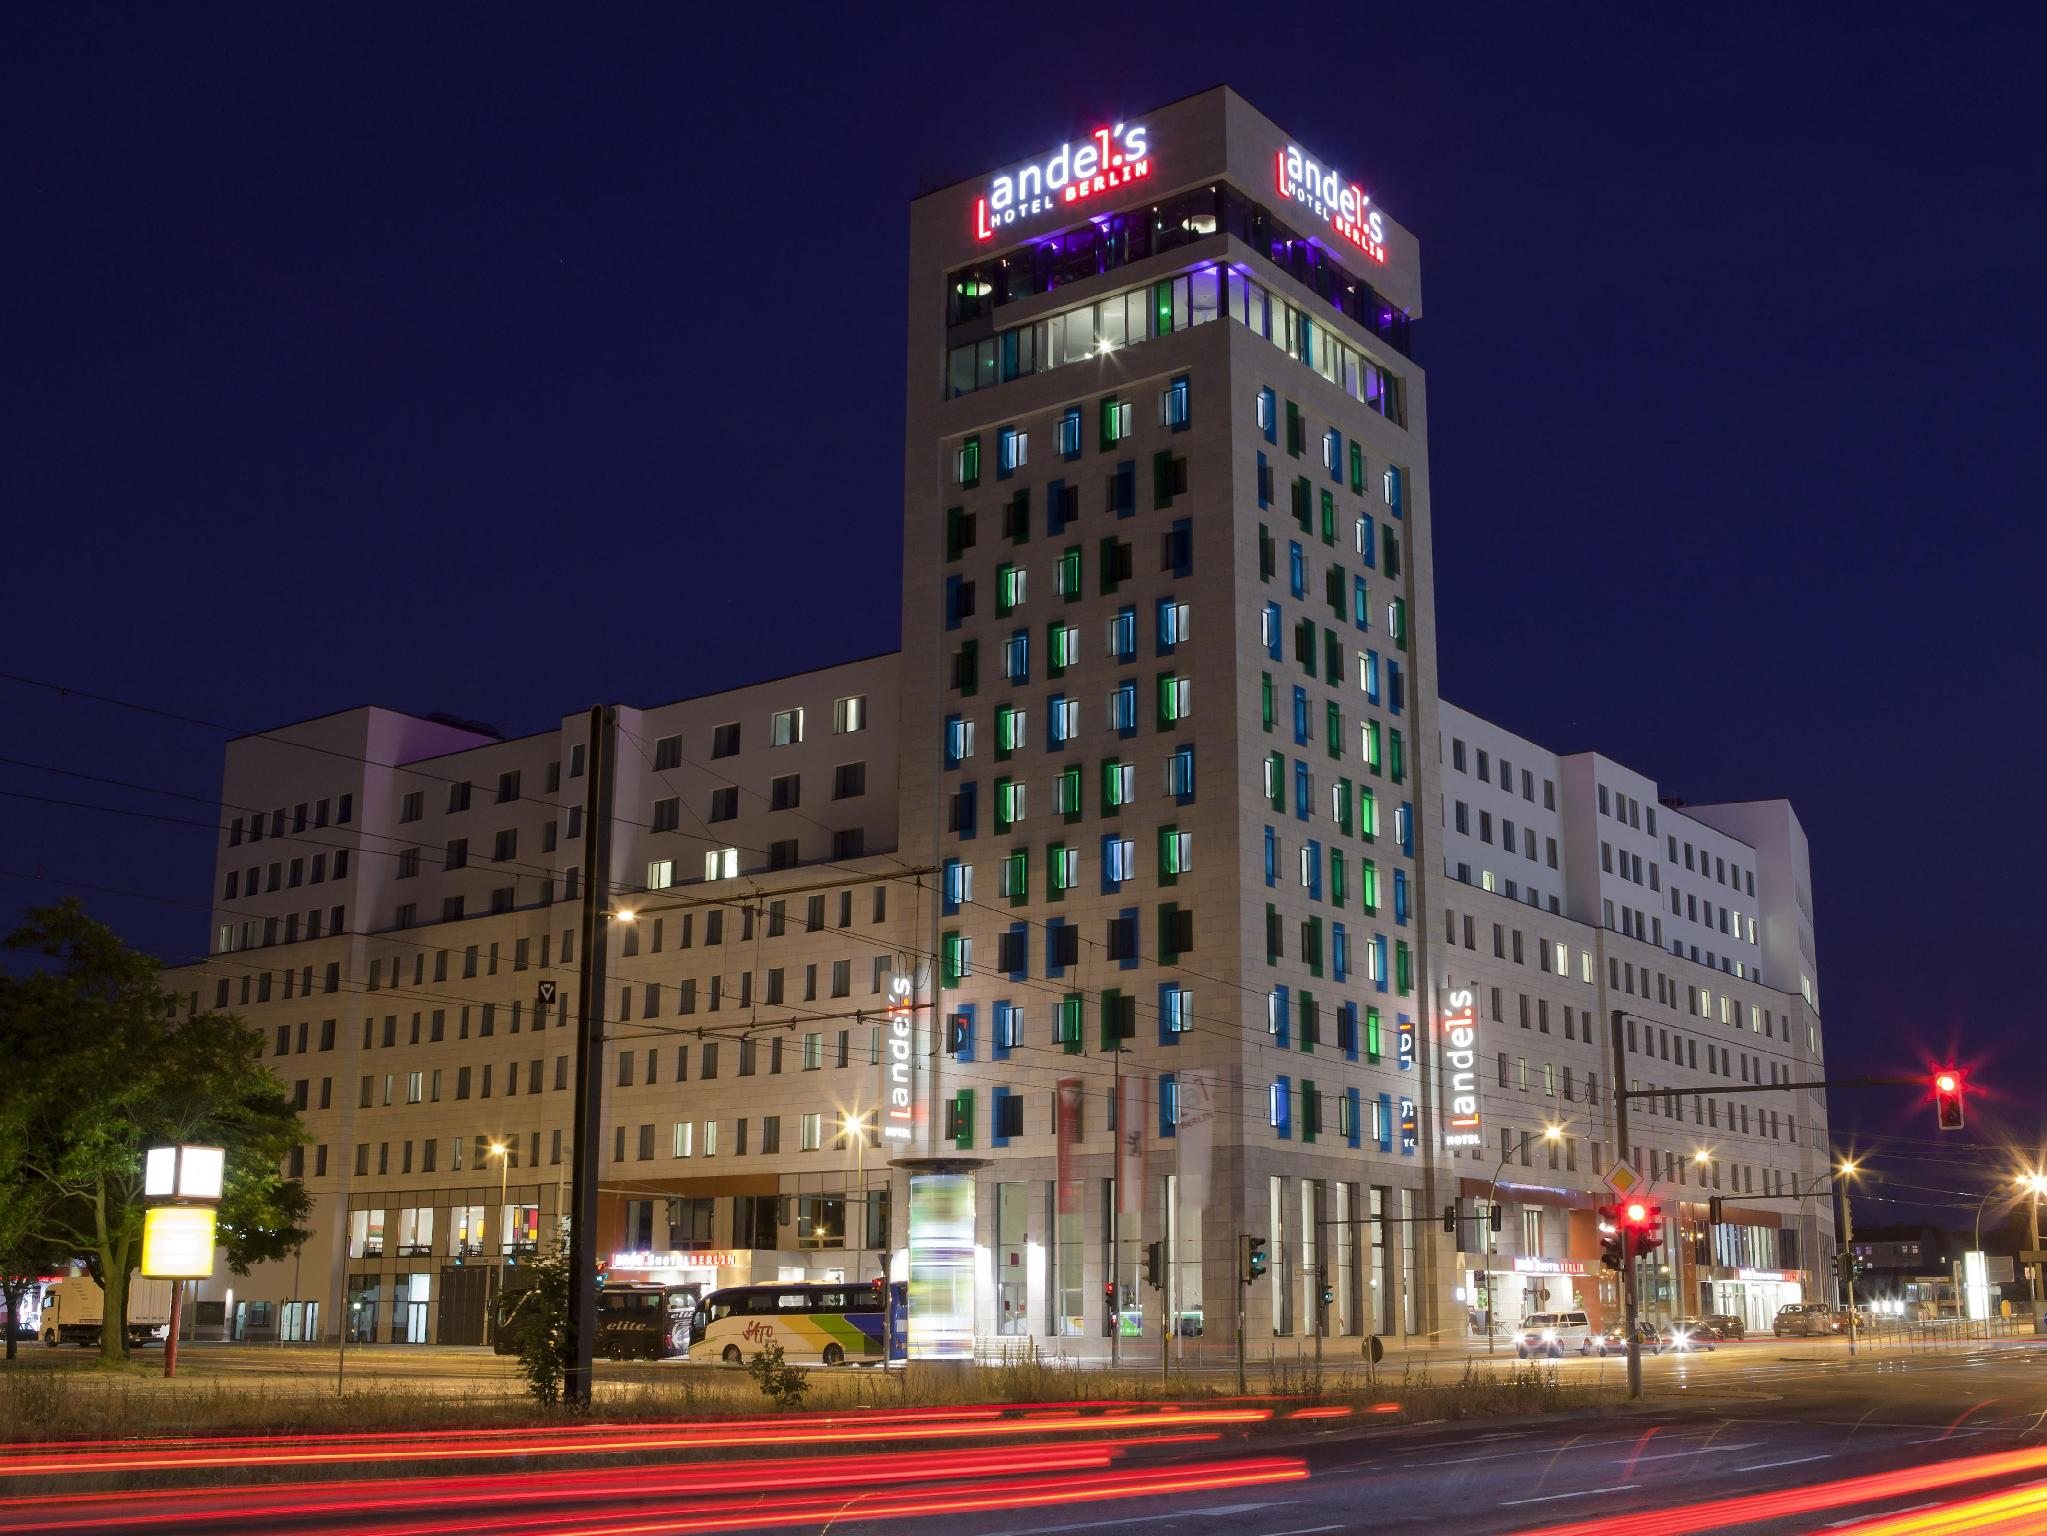 andel's Hotel Berlin, managed by Vienna International Hotels and Resorts Βερολίνο - Θέα